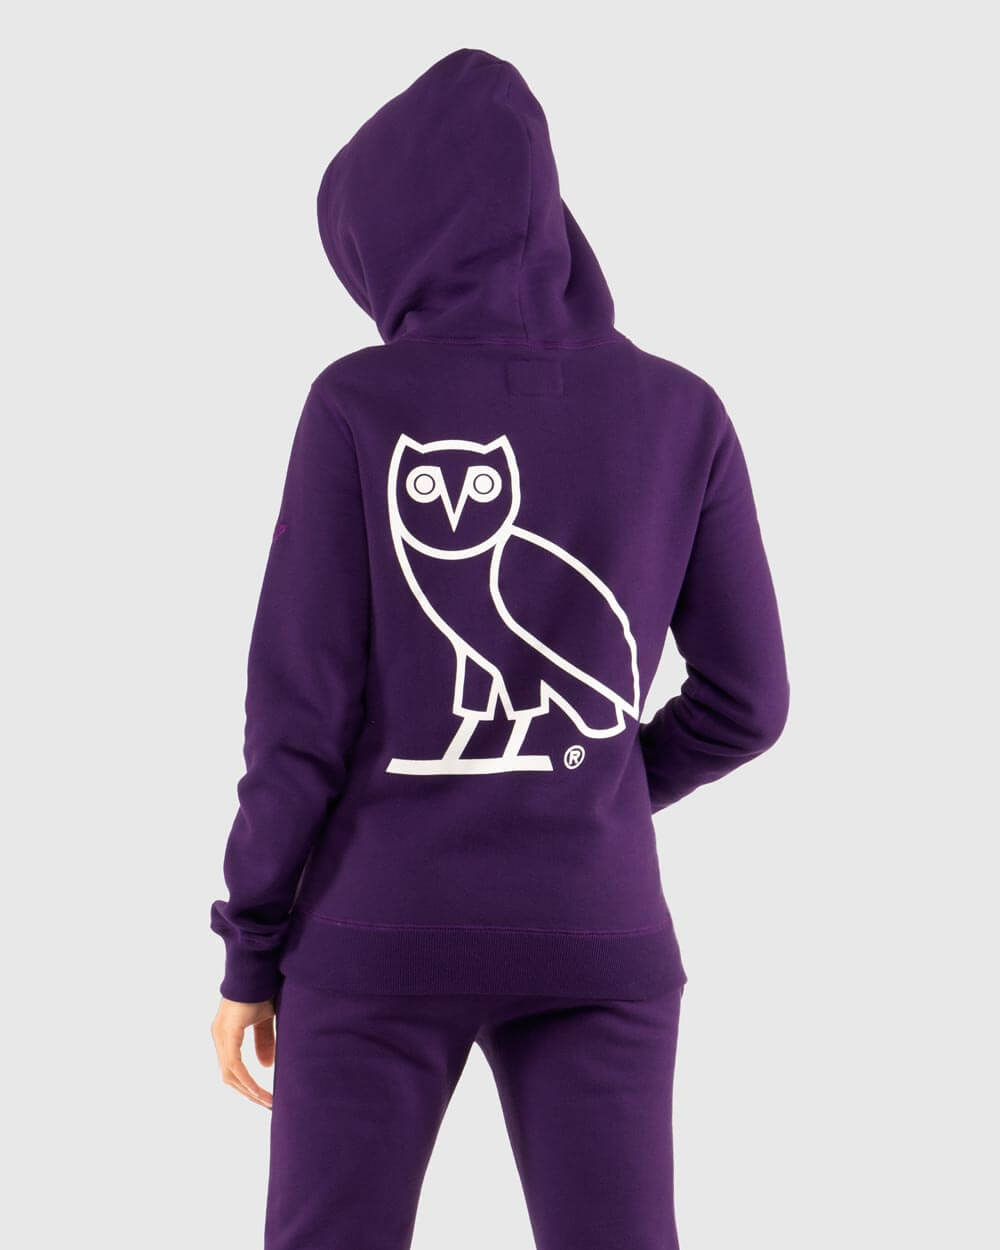 OVO x ROOTS WOMEN'S HOODIE - PURPLE